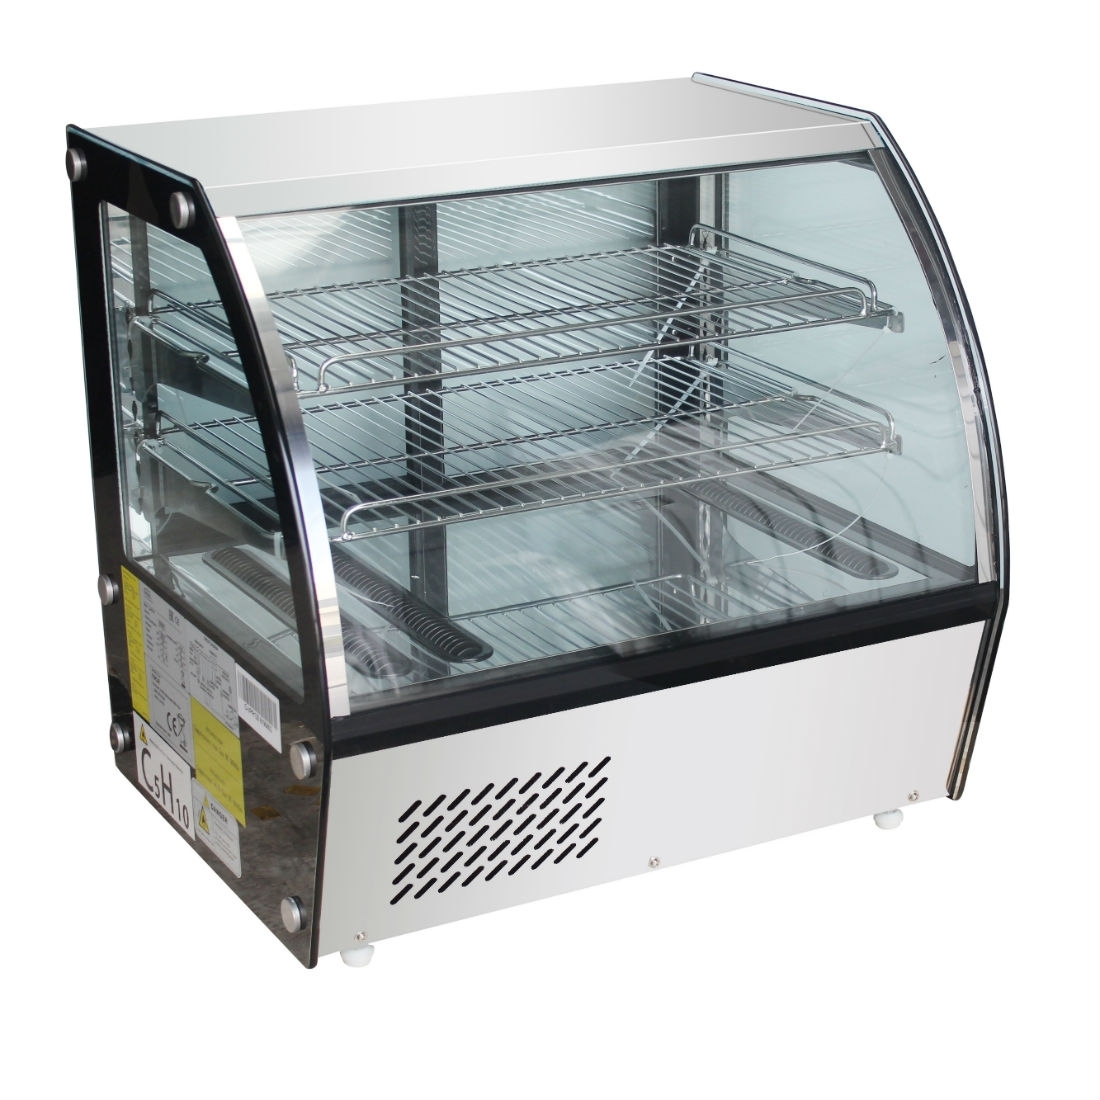 HTR160N - Chilled Counter-Top Food Display